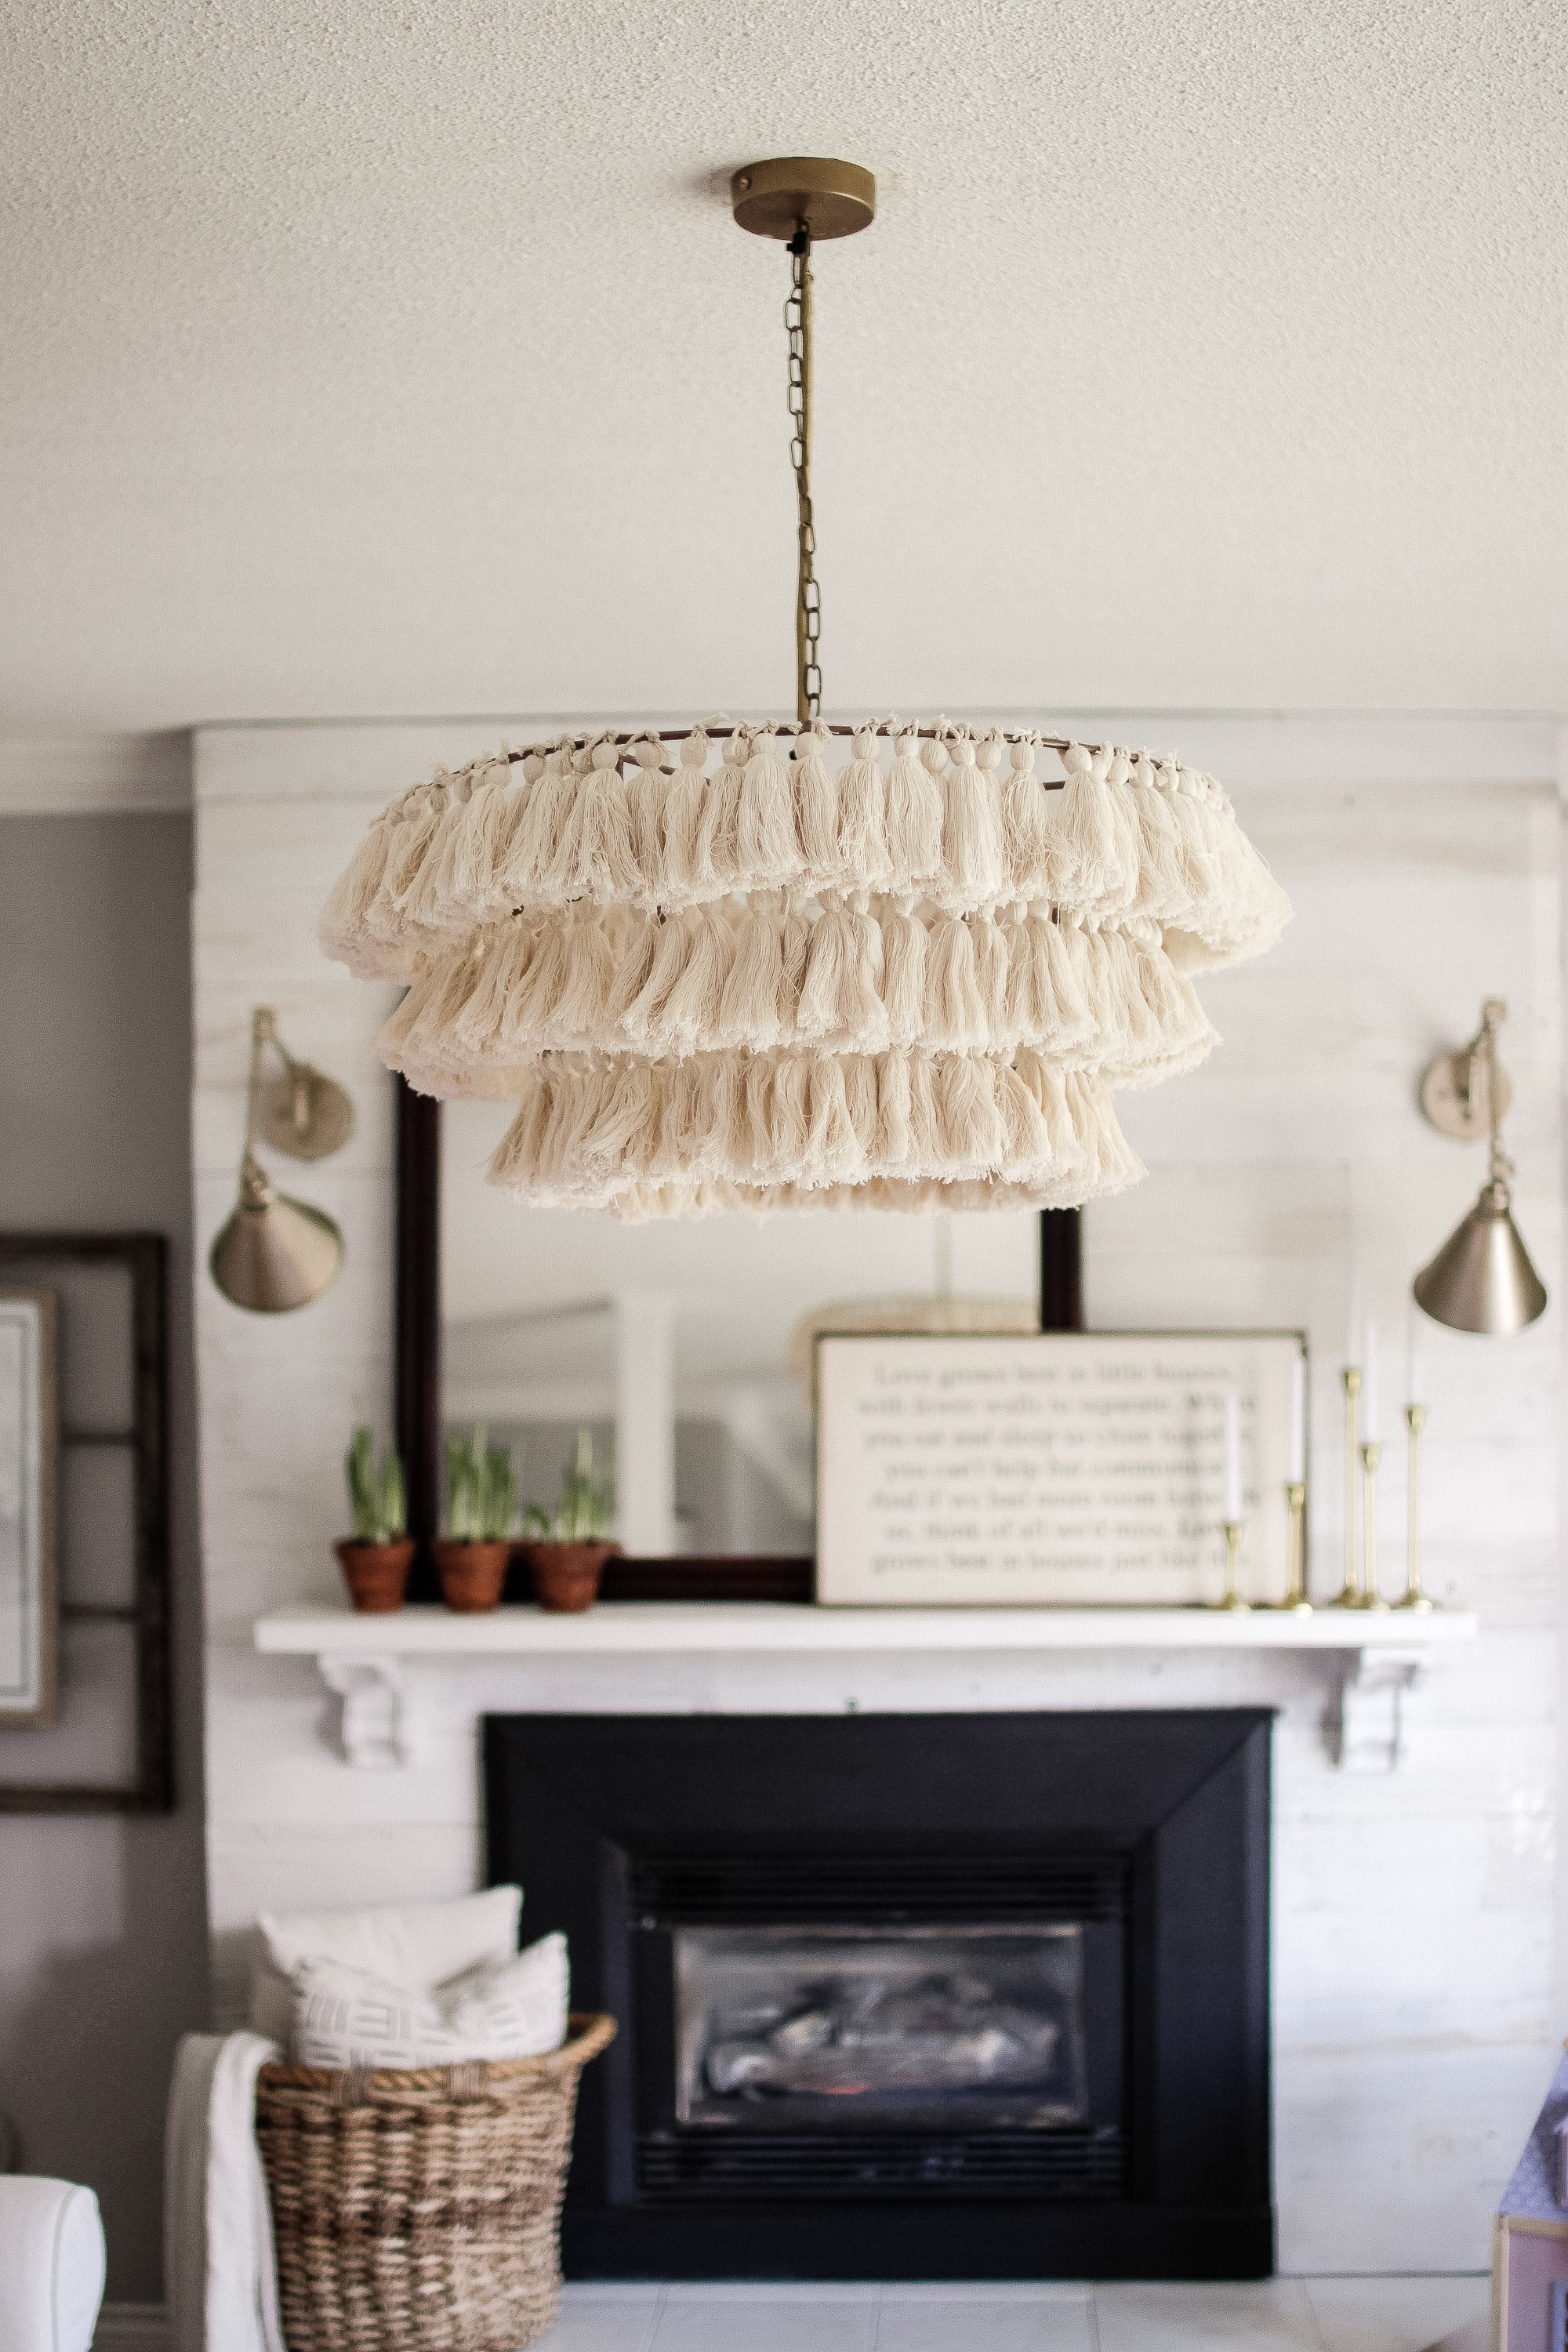 How To Decorate A Simple Spring Living Room. Gold Wall Sconces, Potted Tulips, Seafood accents and Tassel Chandelier